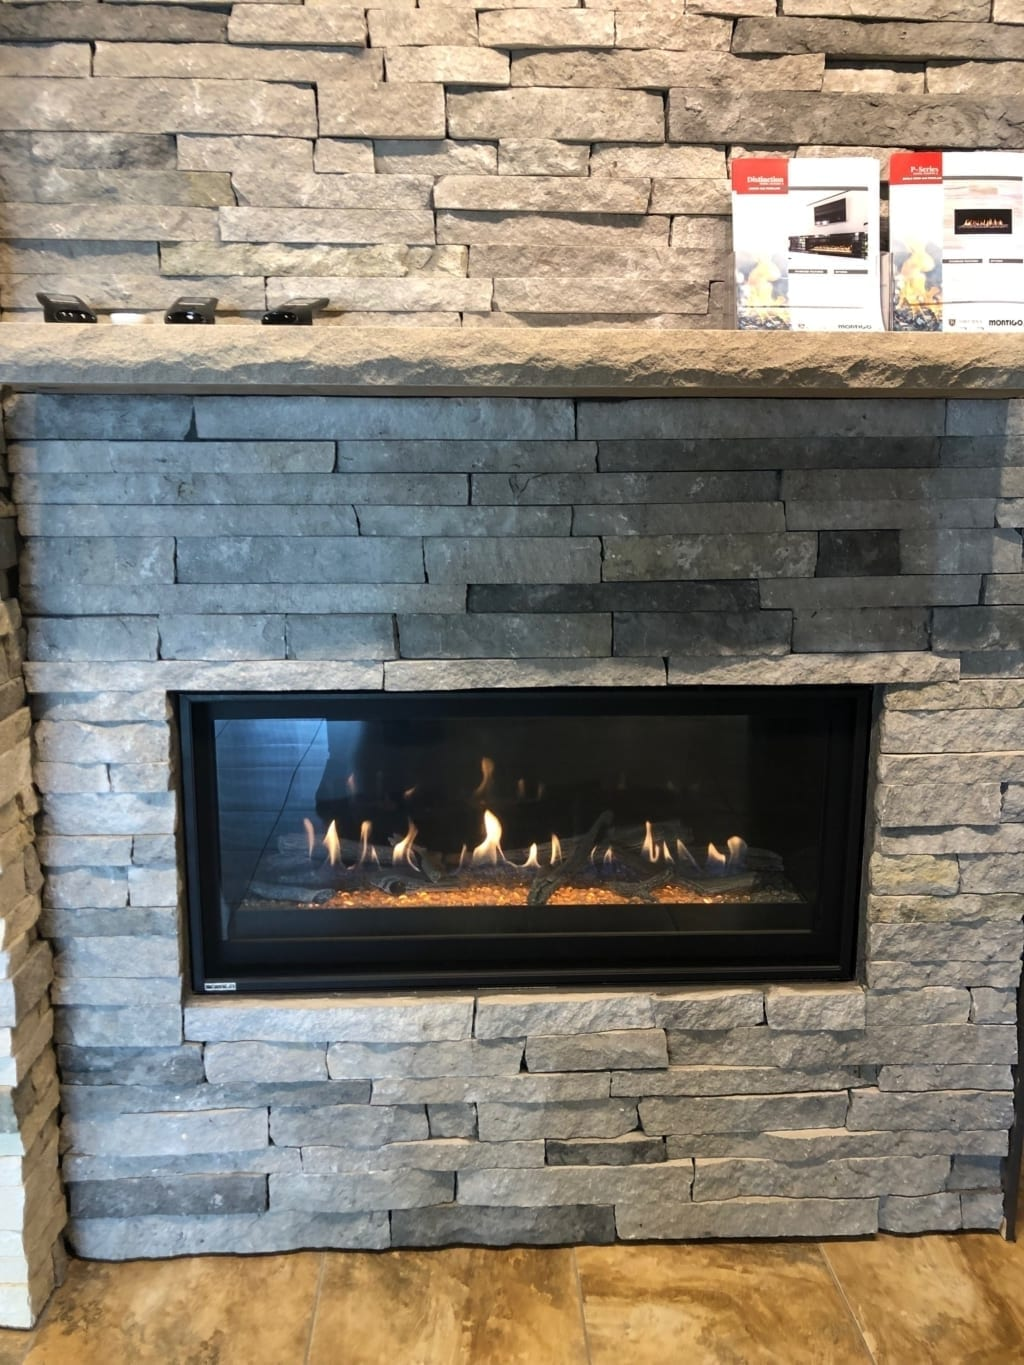 Table Rock Stone & Fireplace - Fireplace Store in Omaha and Lincoln, Nebraska